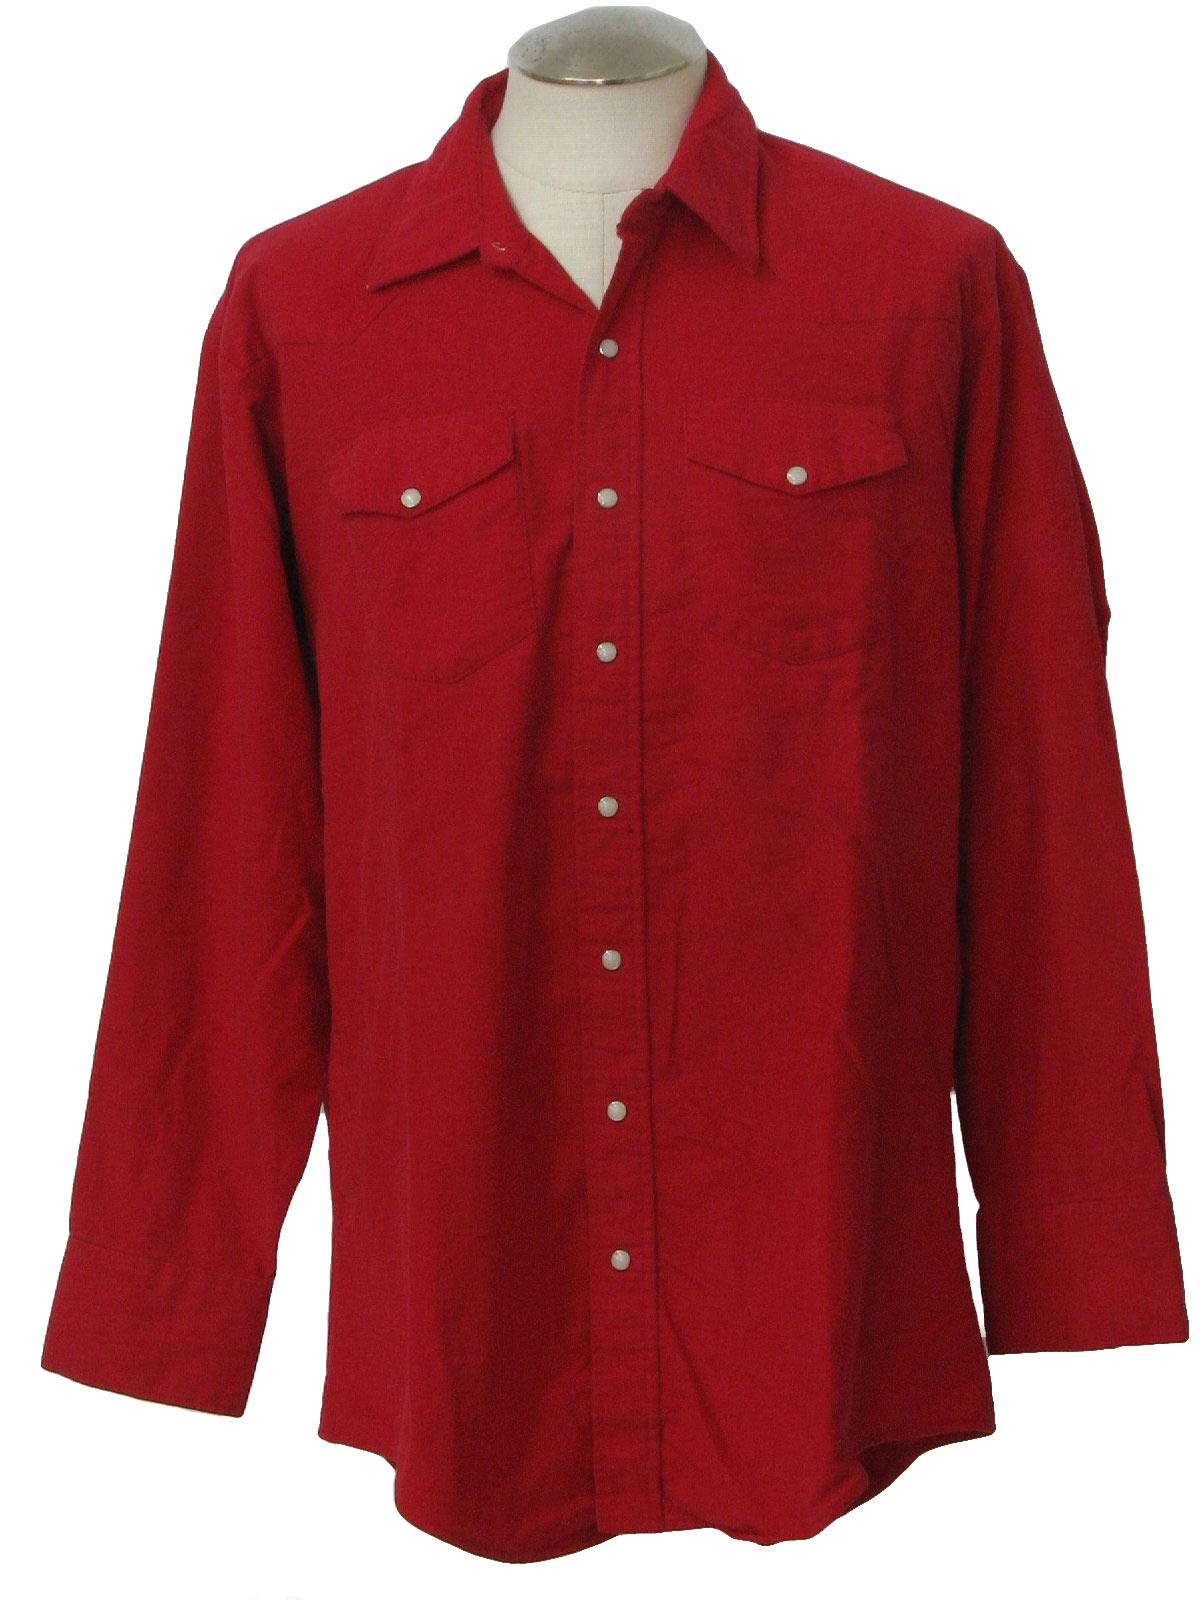 1980s Vintage Western Shirt 80s Prentiss Outdoors Mens